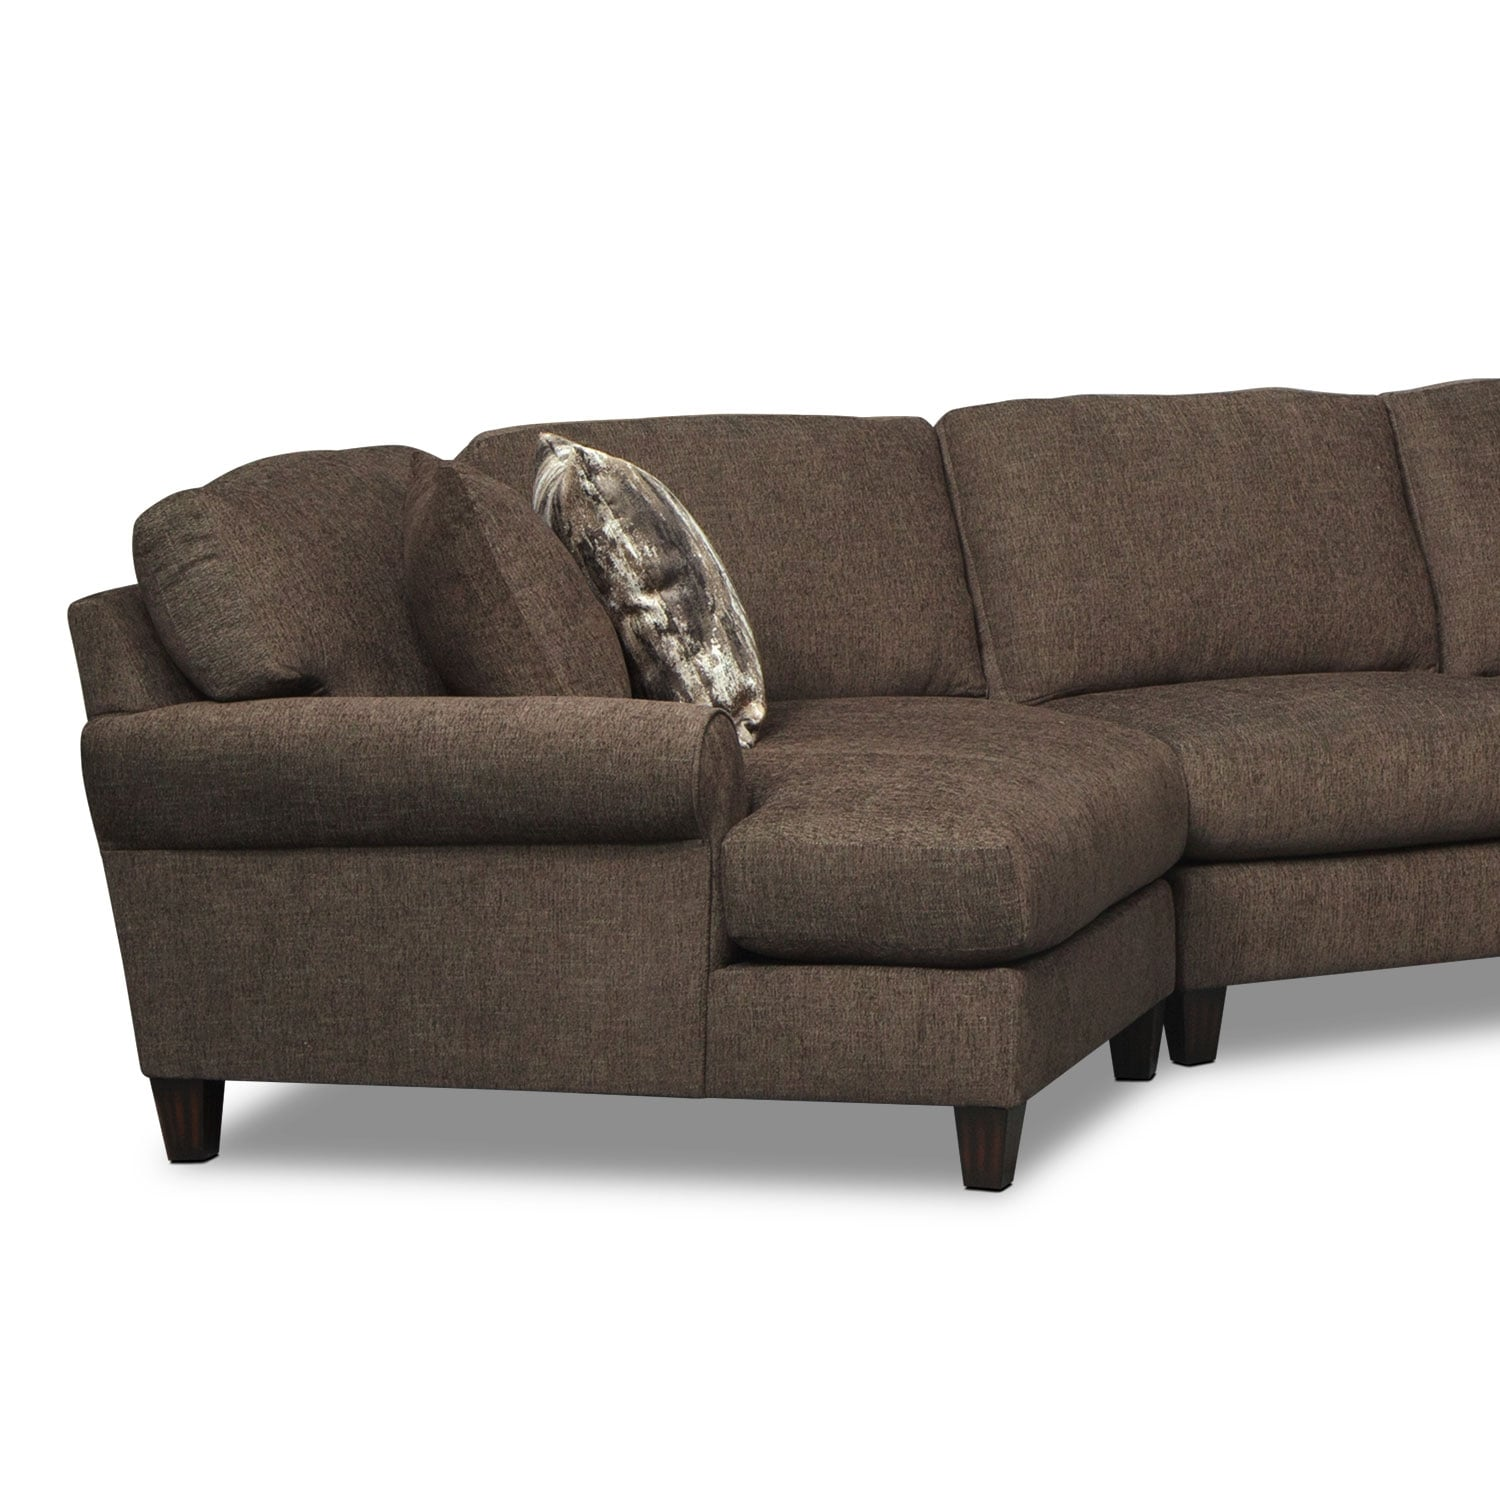 Karma 3 Piece Sectional with Right Facing Chaise and Left Facing